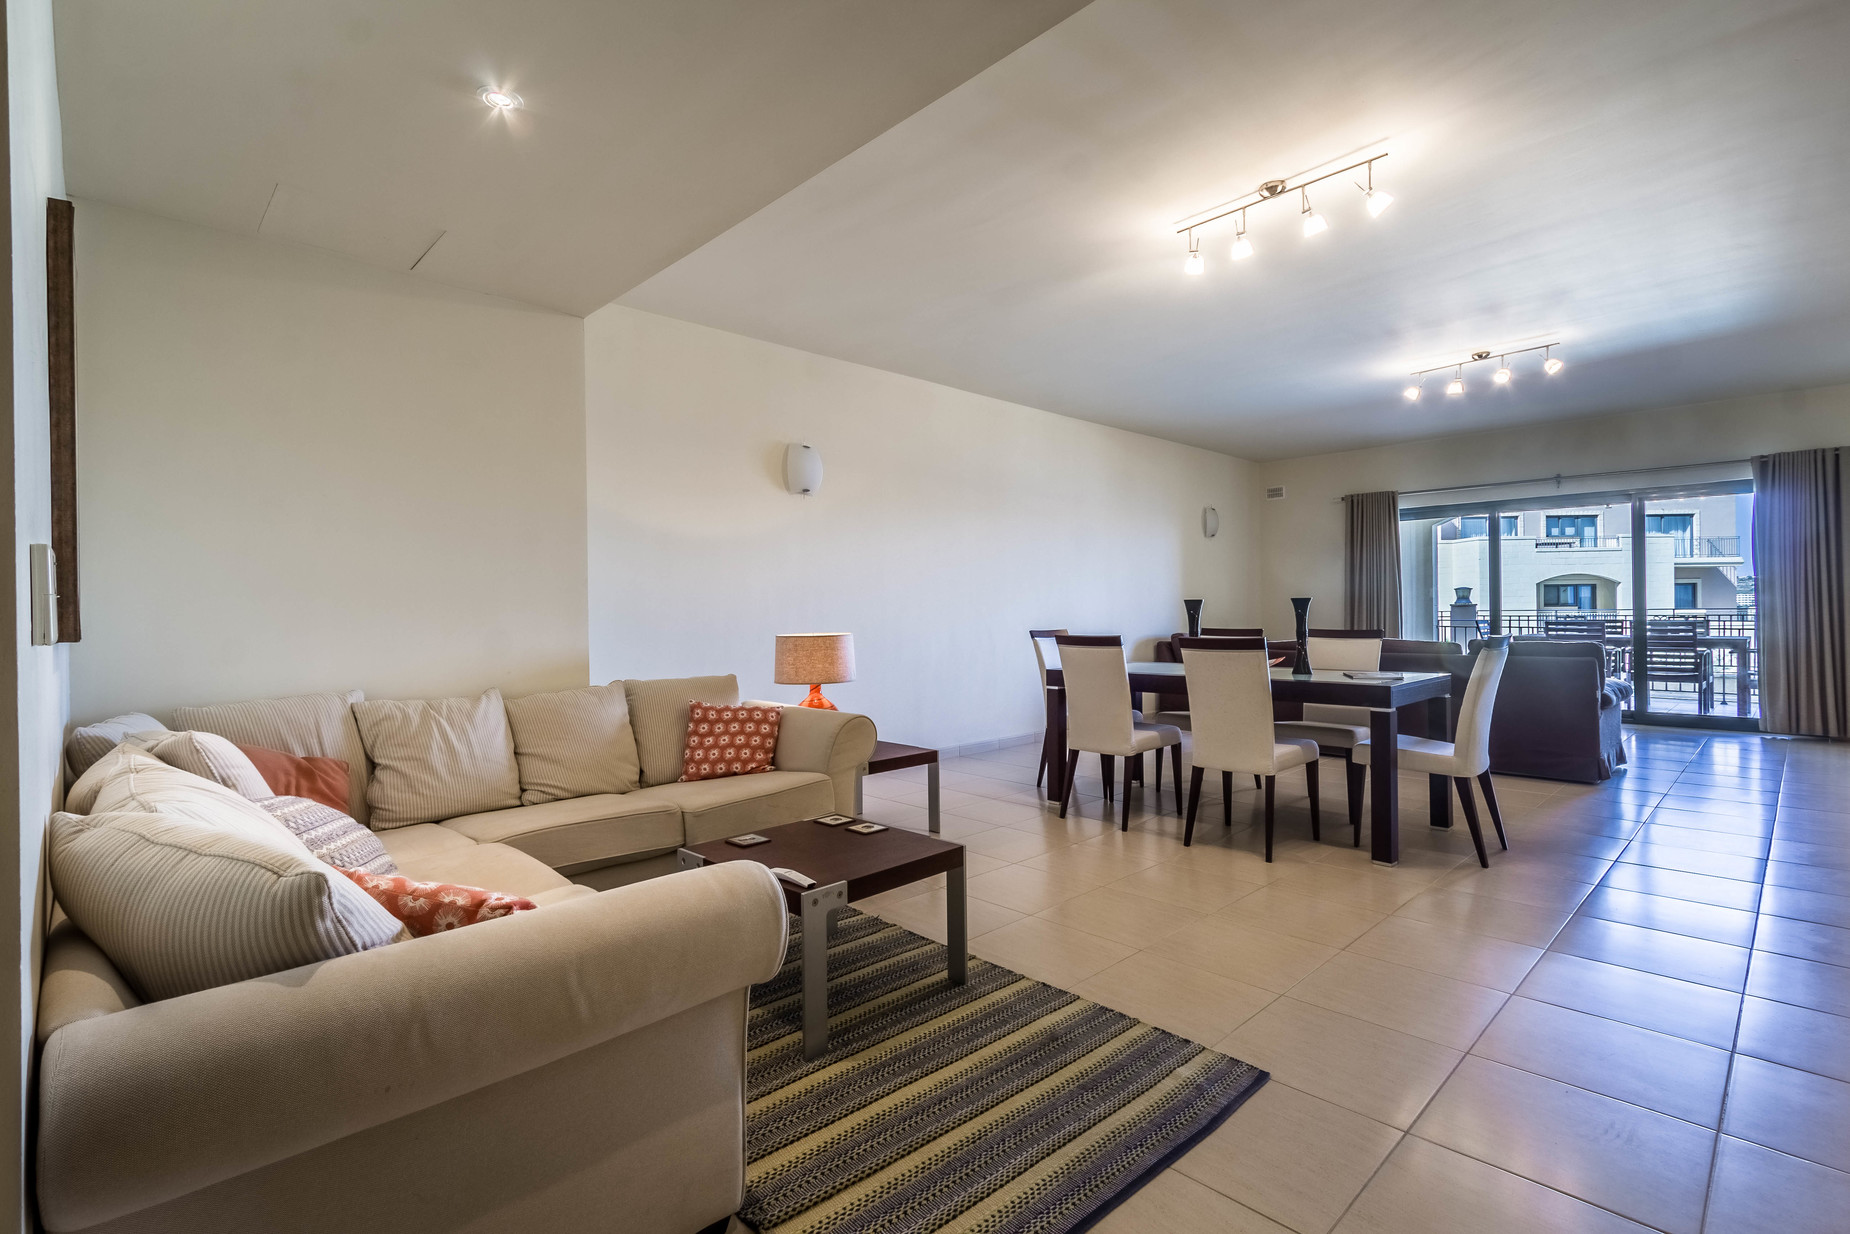 4 bed Apartment For Sale in Mellieha, Mellieha - thumb 4